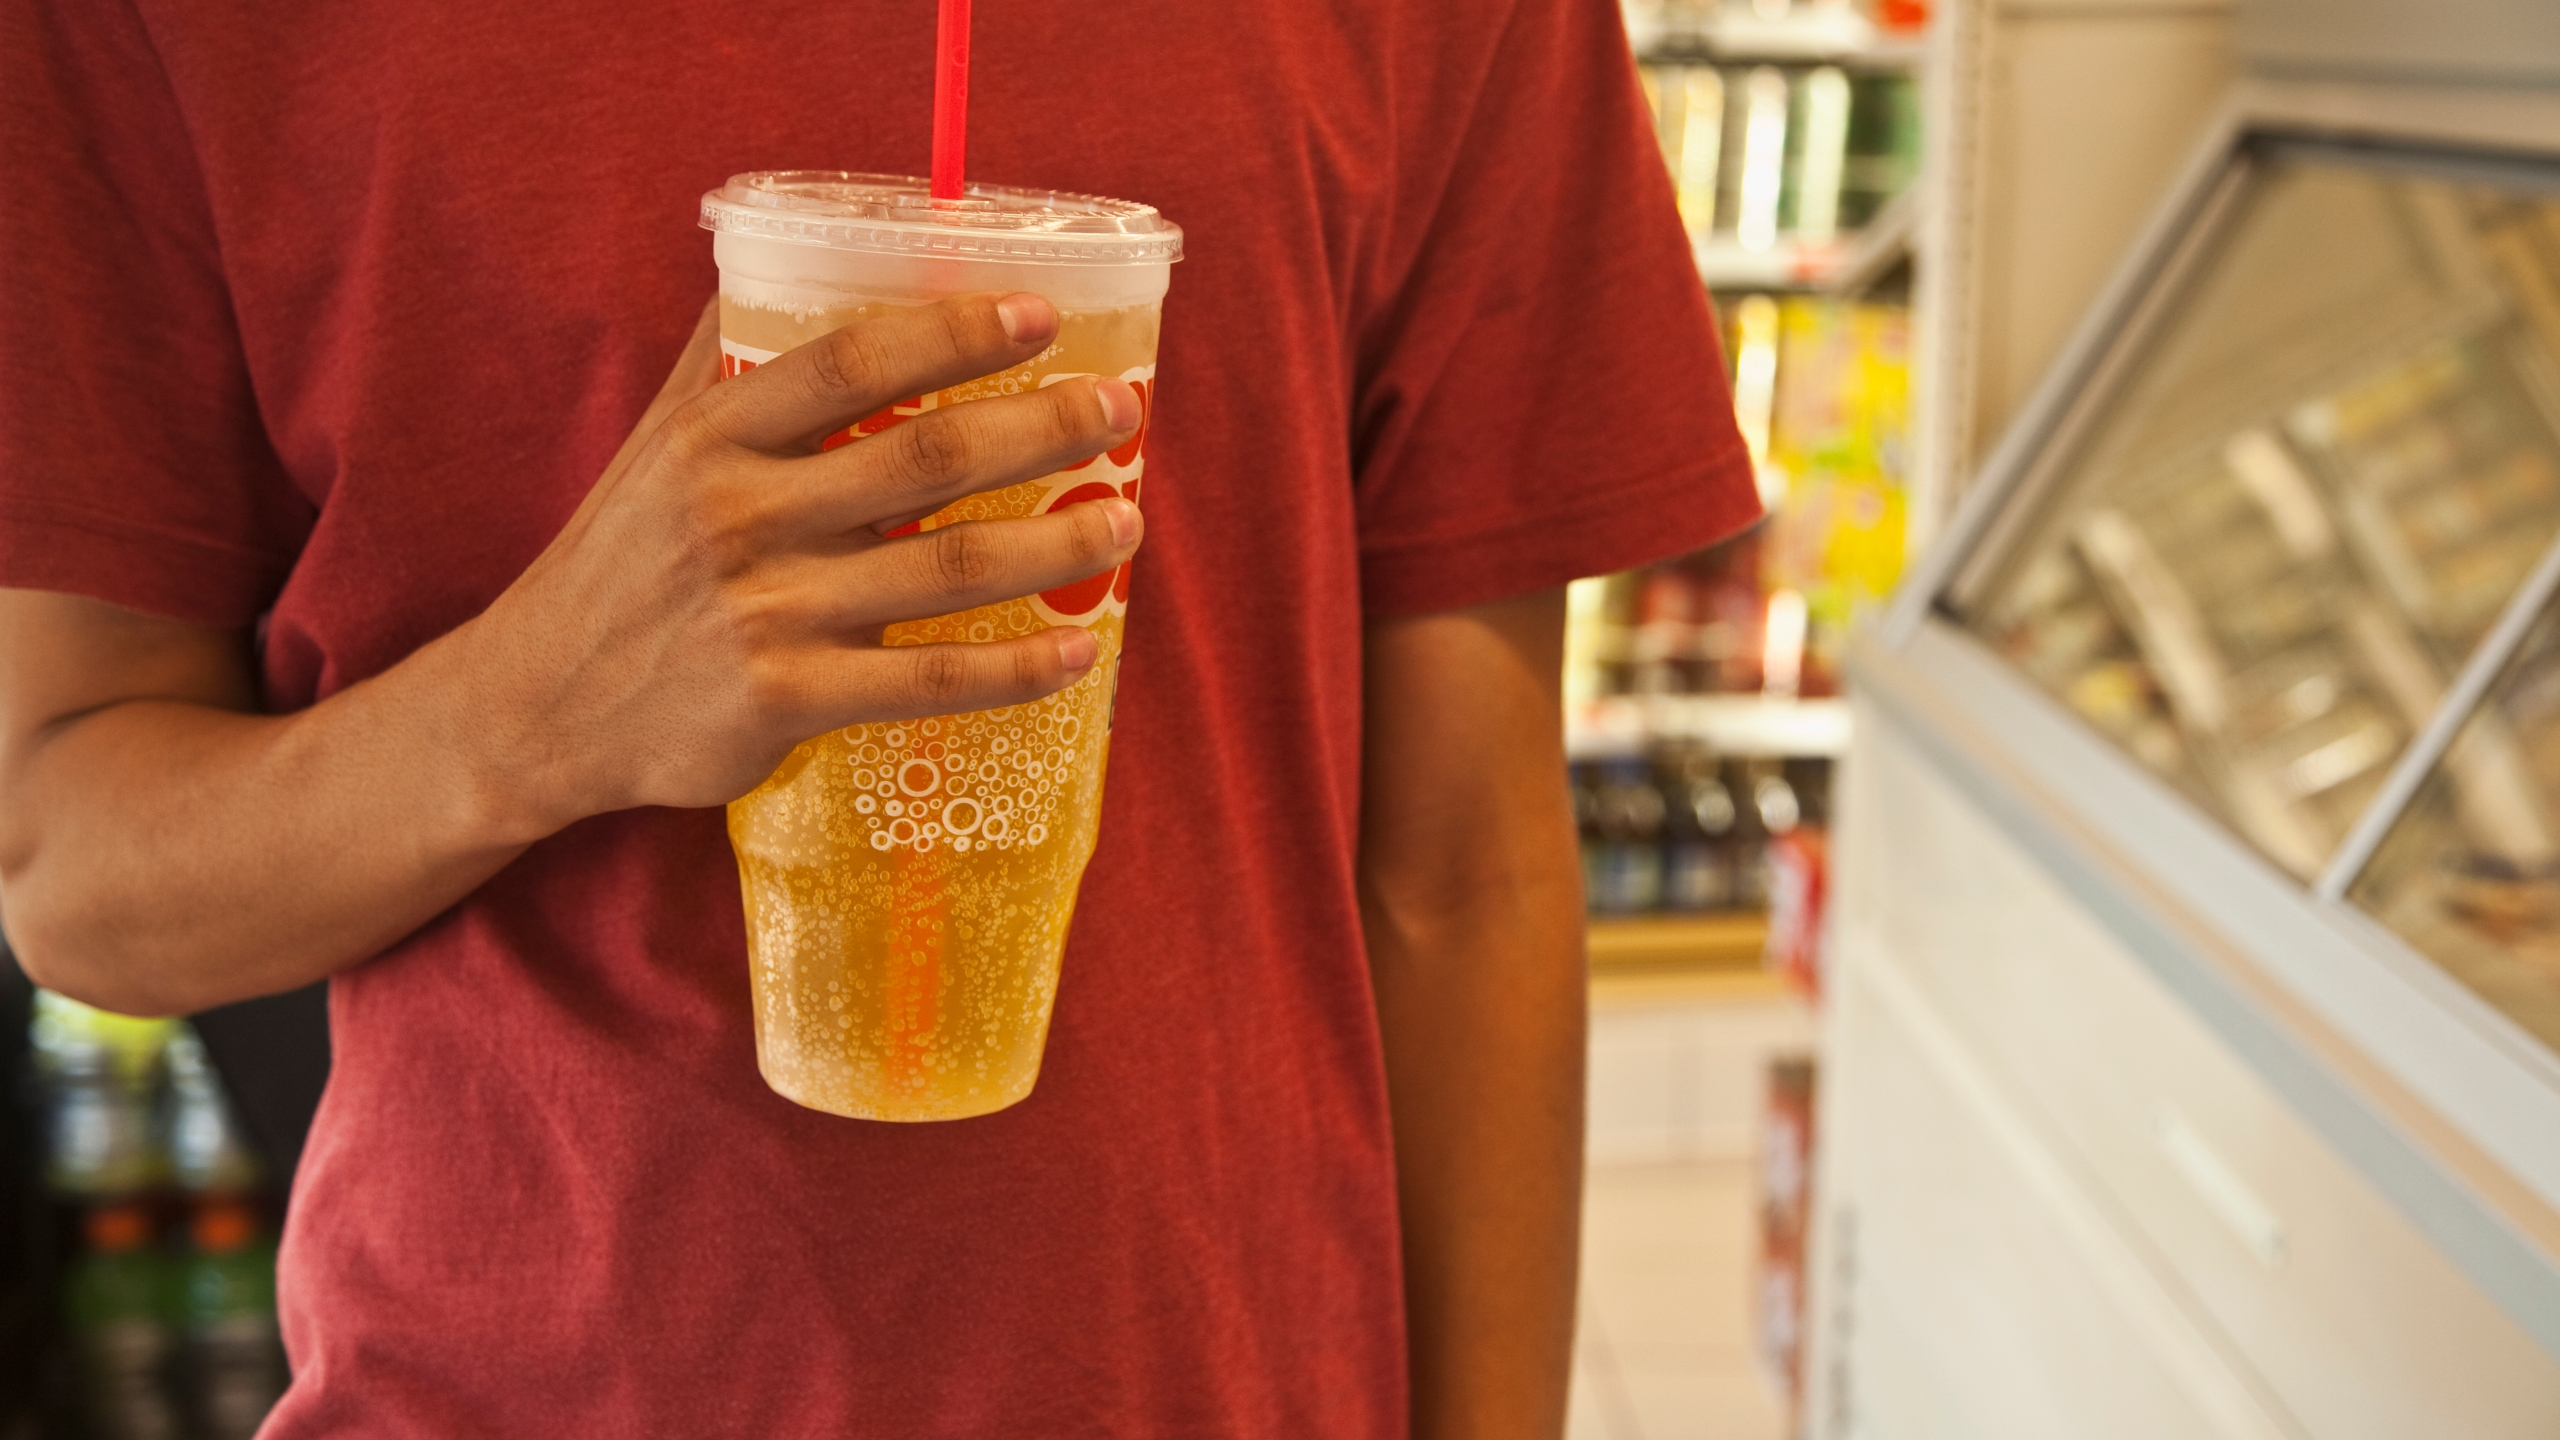 A man holds a giant cup of soda at a convenience store. (Credit: Sarah Fix via Getty Images)